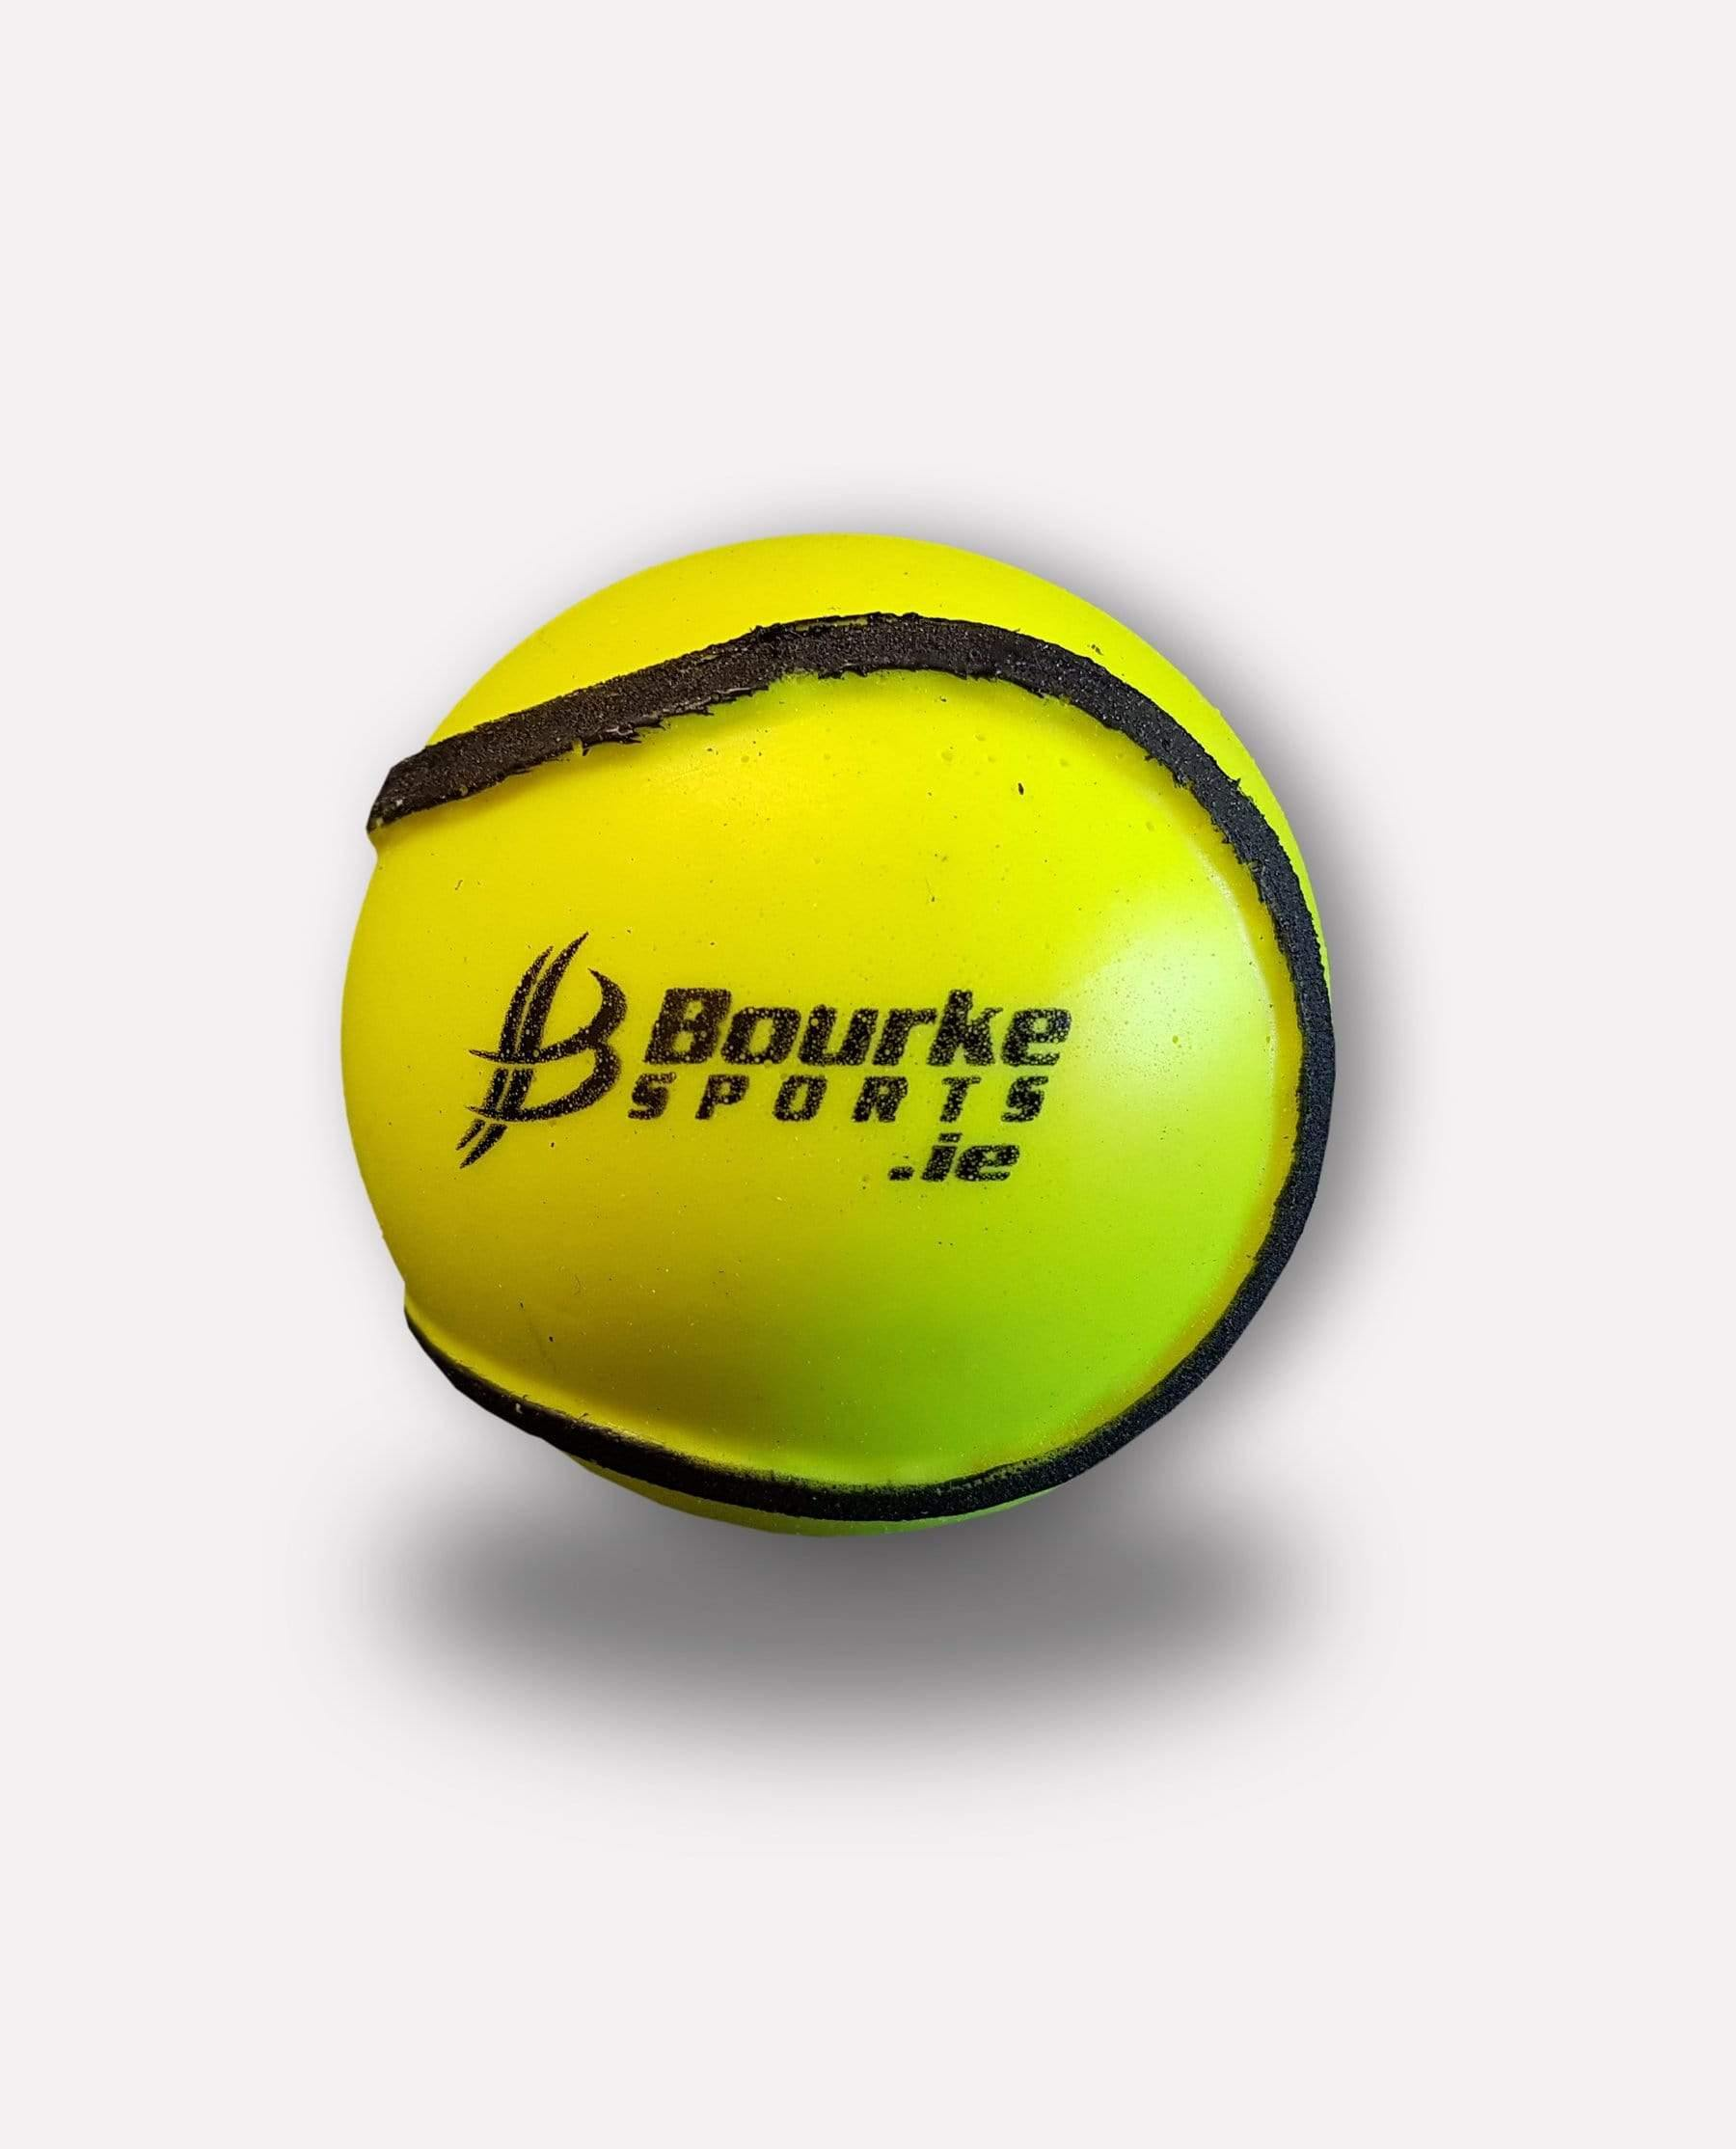 All Weather Sliotar-Wall Balls (Size 5) - Bourke Sports Limited